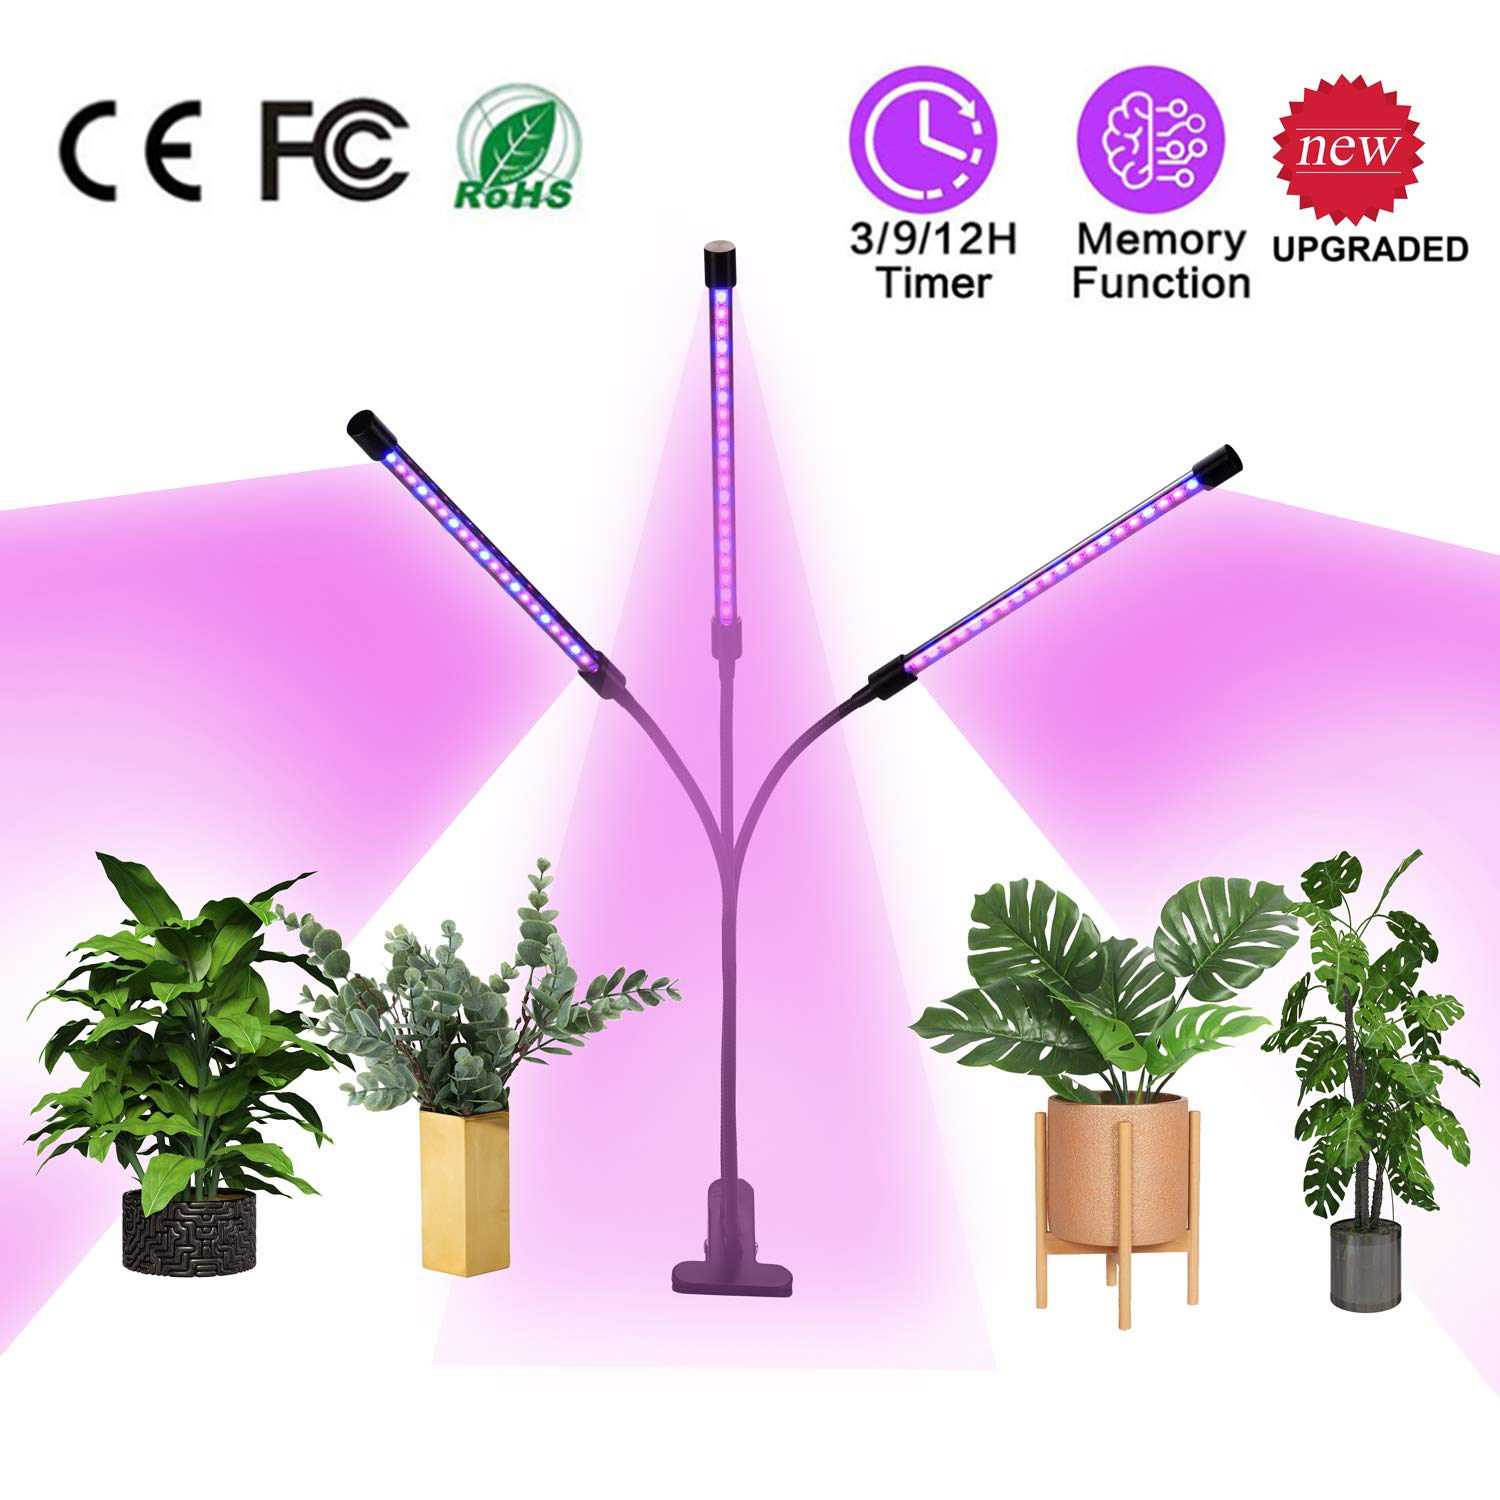 Plant Grow Light 30W with Auto Turn On Function, 60 LED Plant Grow Lamp with 3 6 12H Timer, 3-Head Divide Control Adjustable Gooseneck, 5 Dimmable Levels for Indoor Plants Full Spectrum